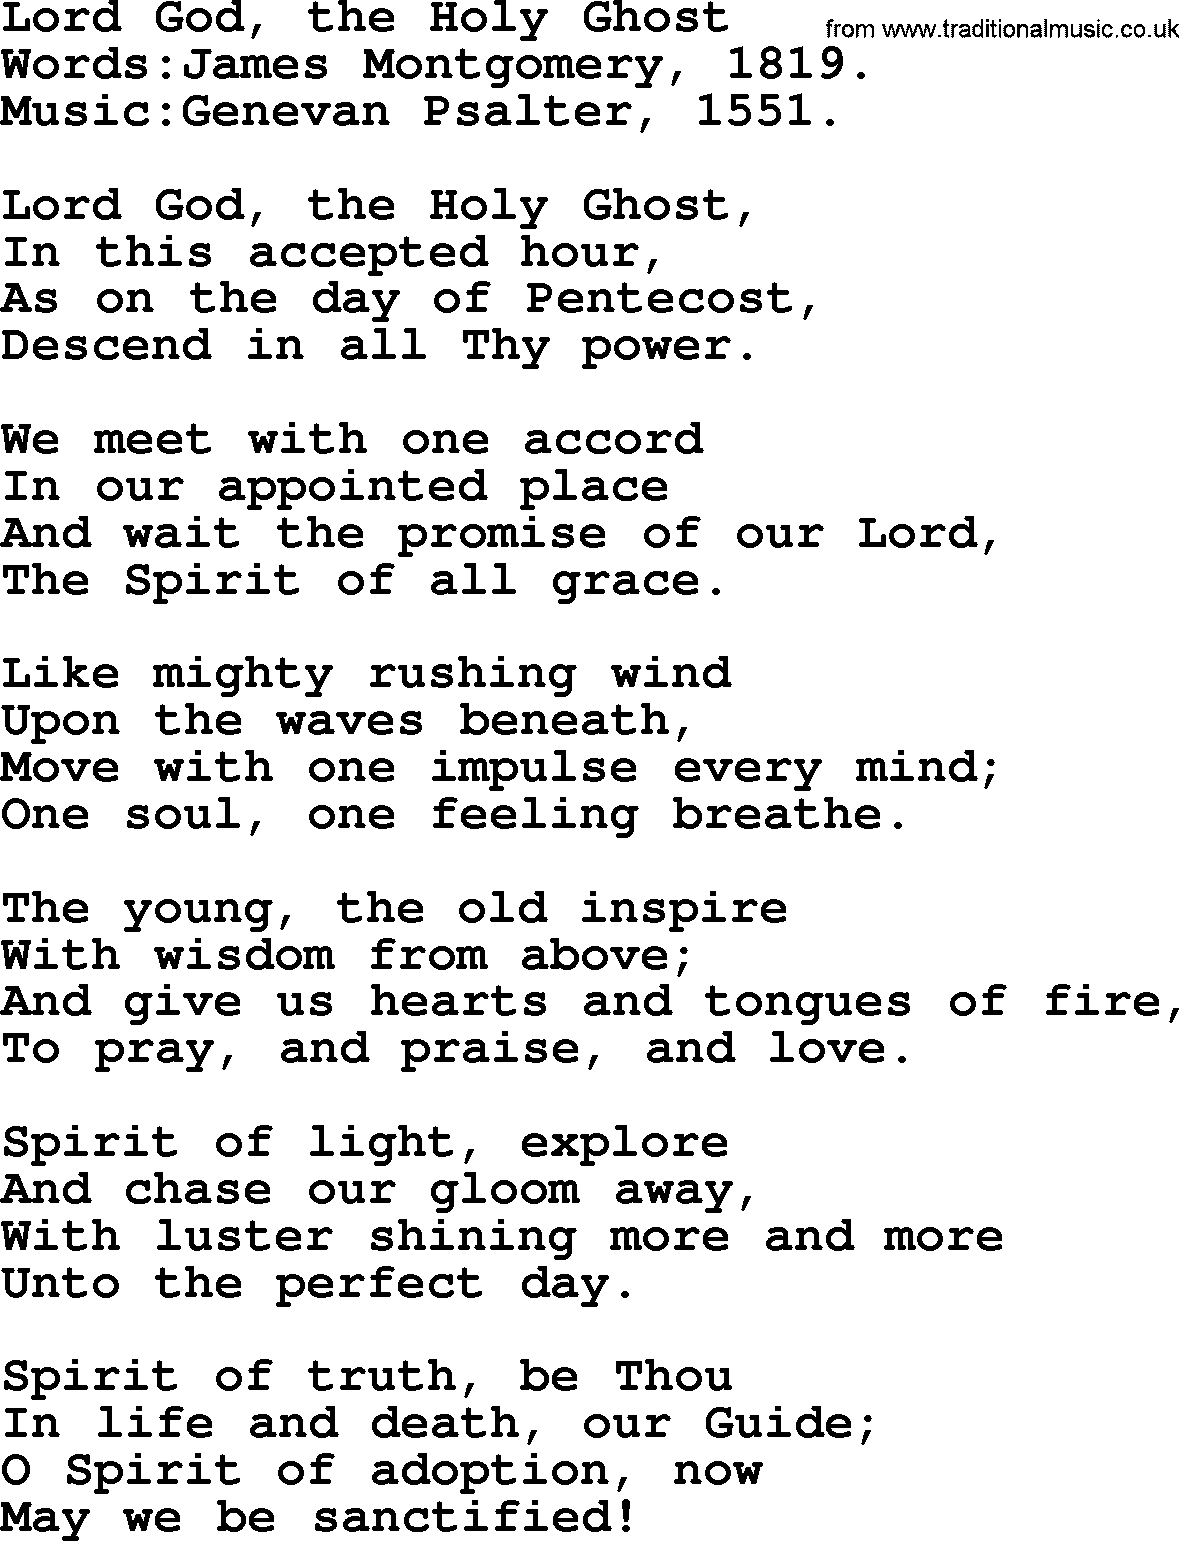 Pentecost Hymns, Song: Lord God, The Holy Ghost - lyrics and PDF